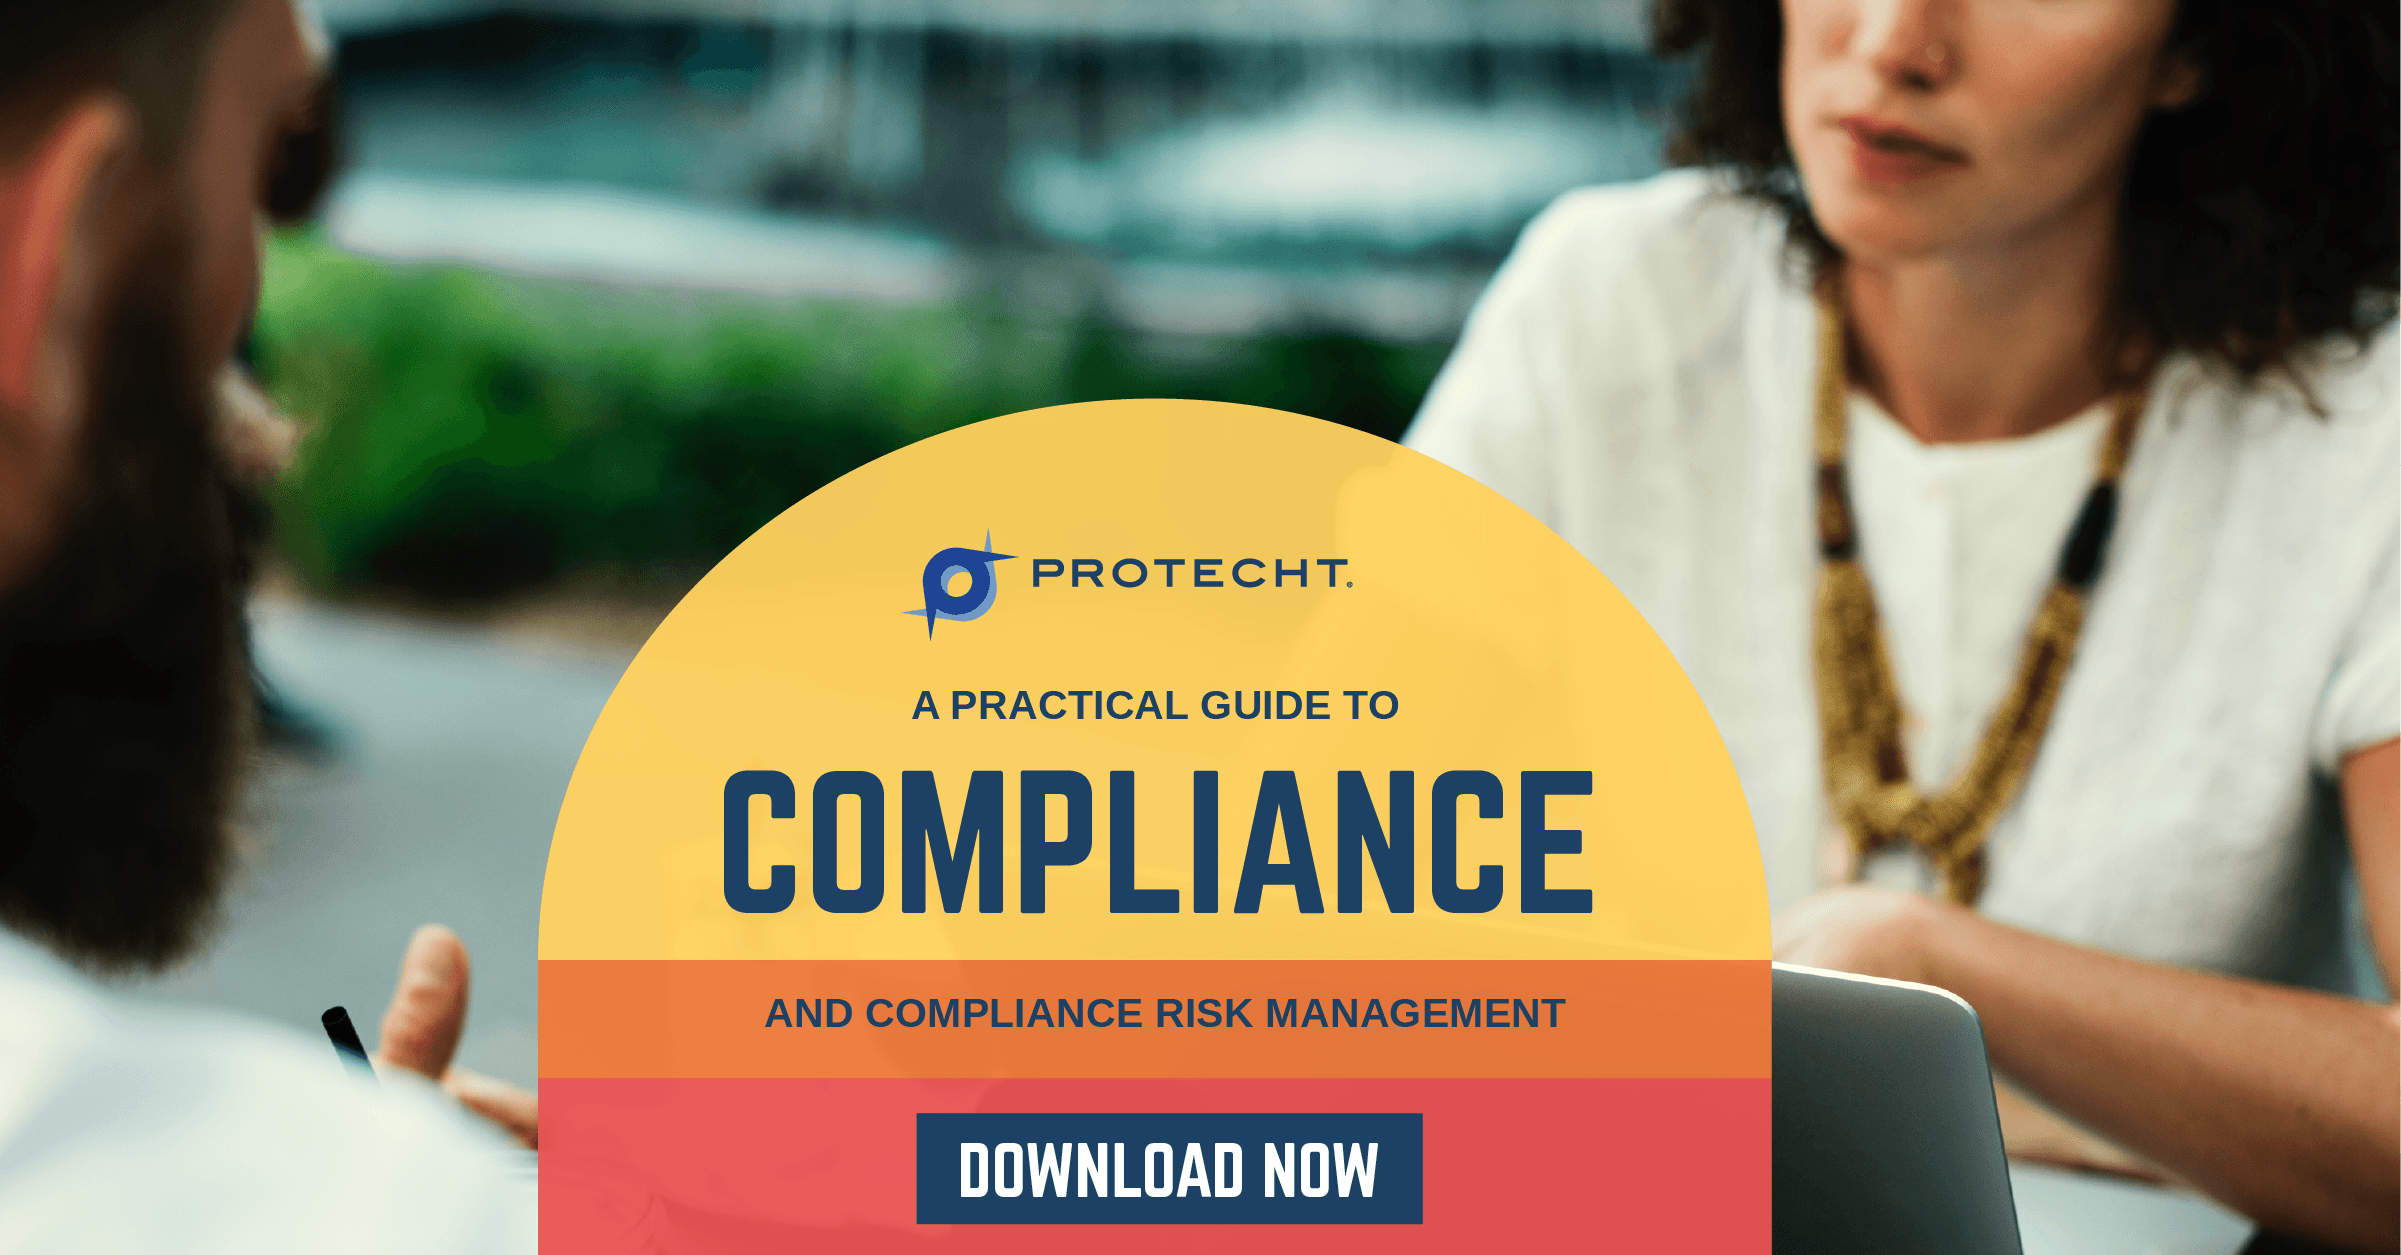 Compliance eBook Image Download.png